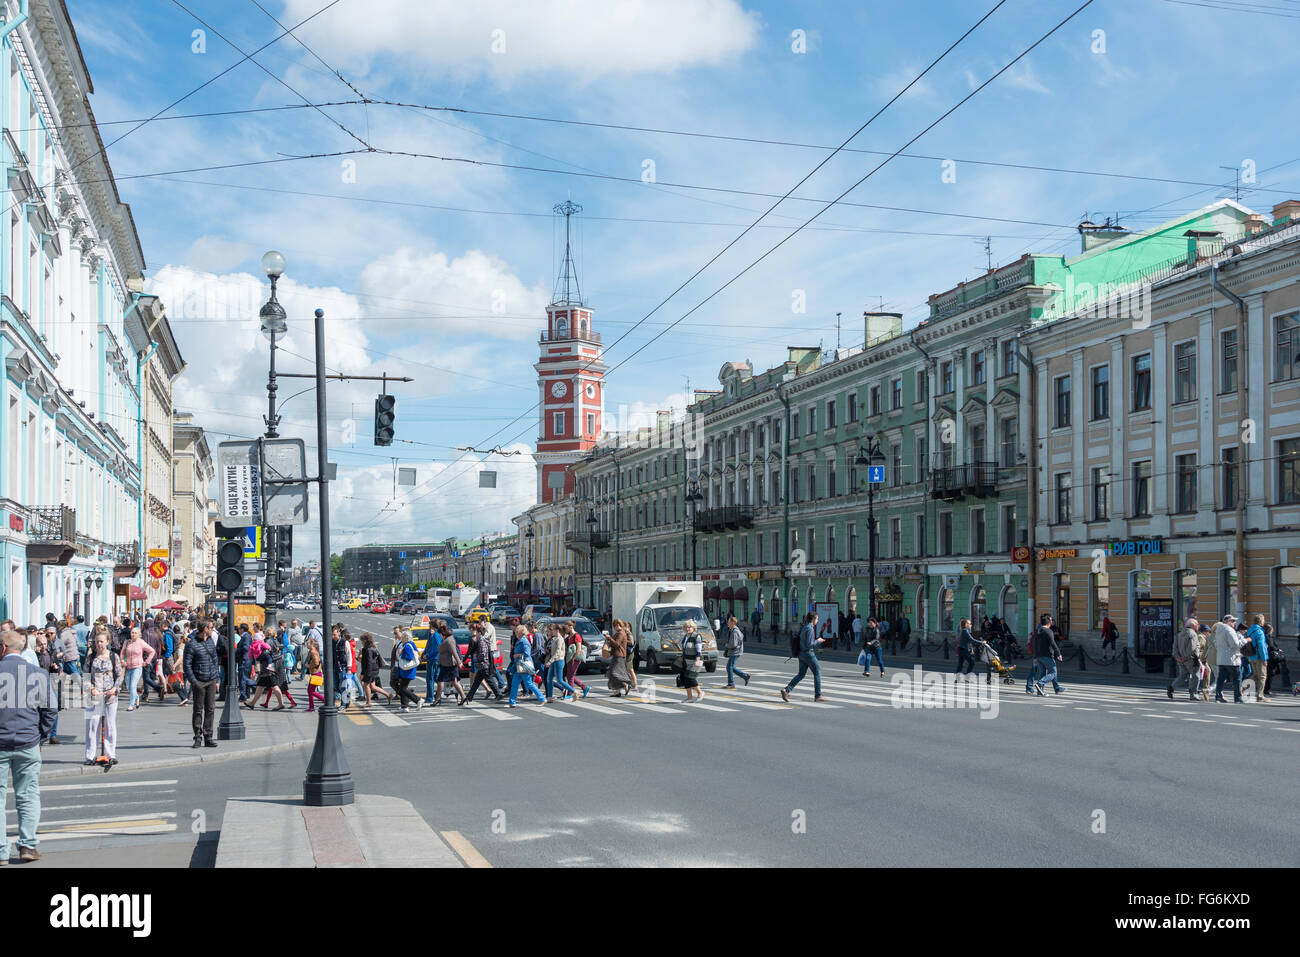 Nevsky Prospect, Saint Petersburg, Northwestern Region, Russian Federation - Stock Image